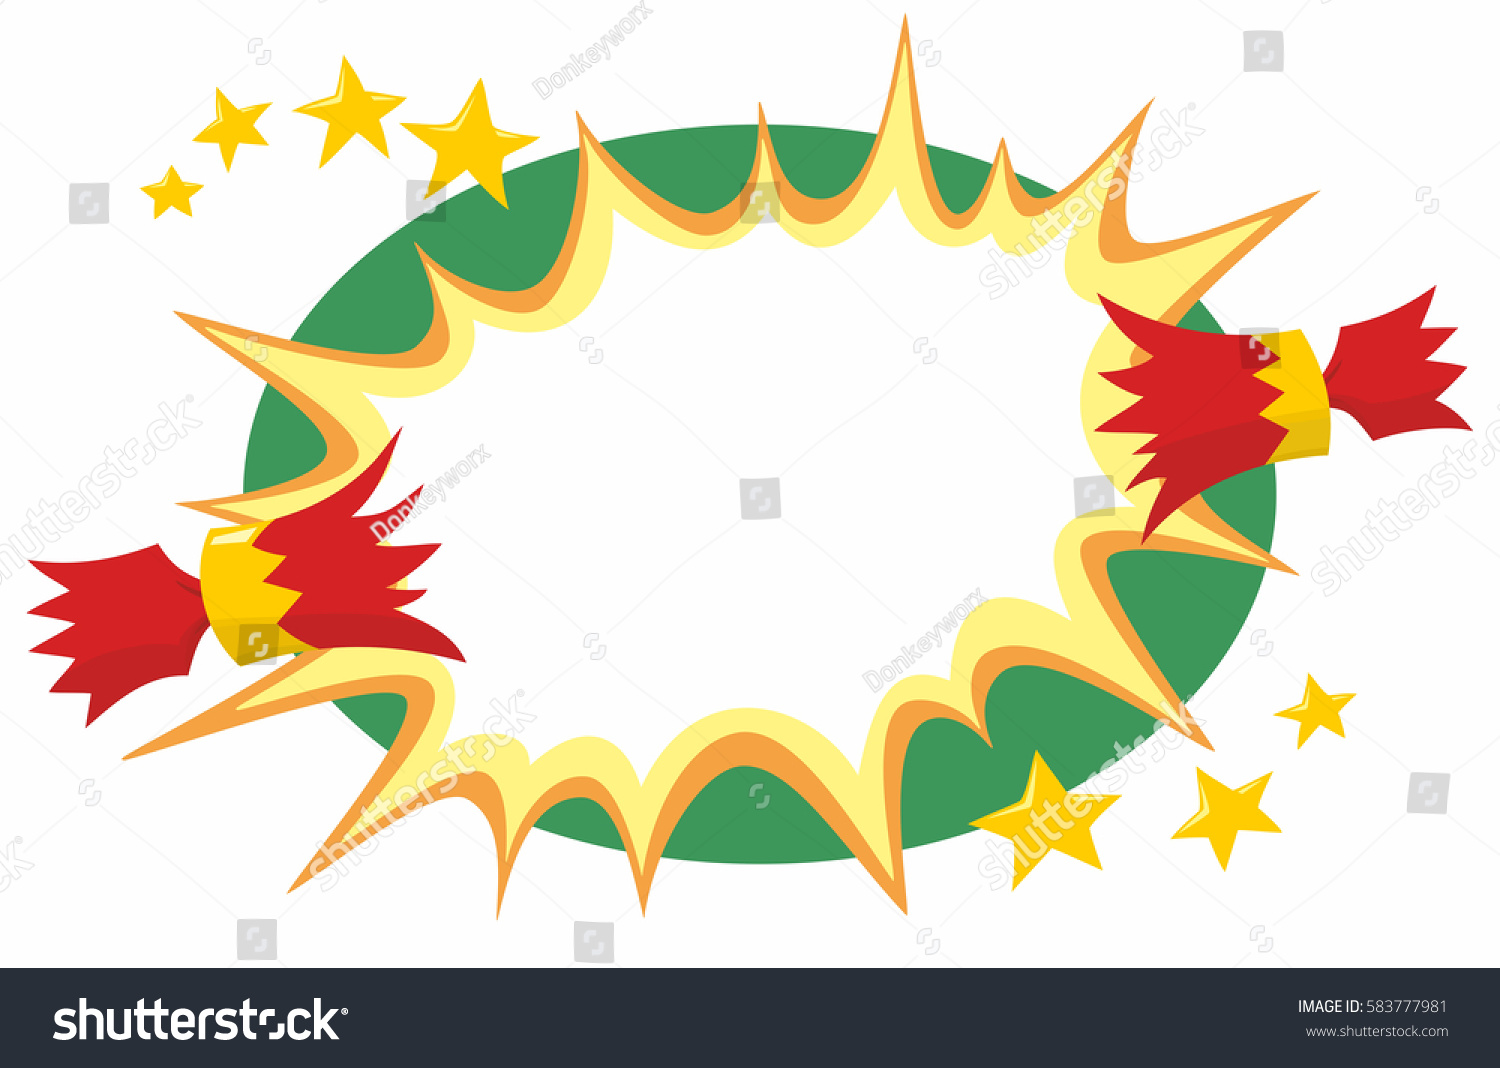 Christmas Crackers Cartoon.Christmas Cracker Red Gold Being Pulled Stock Vector